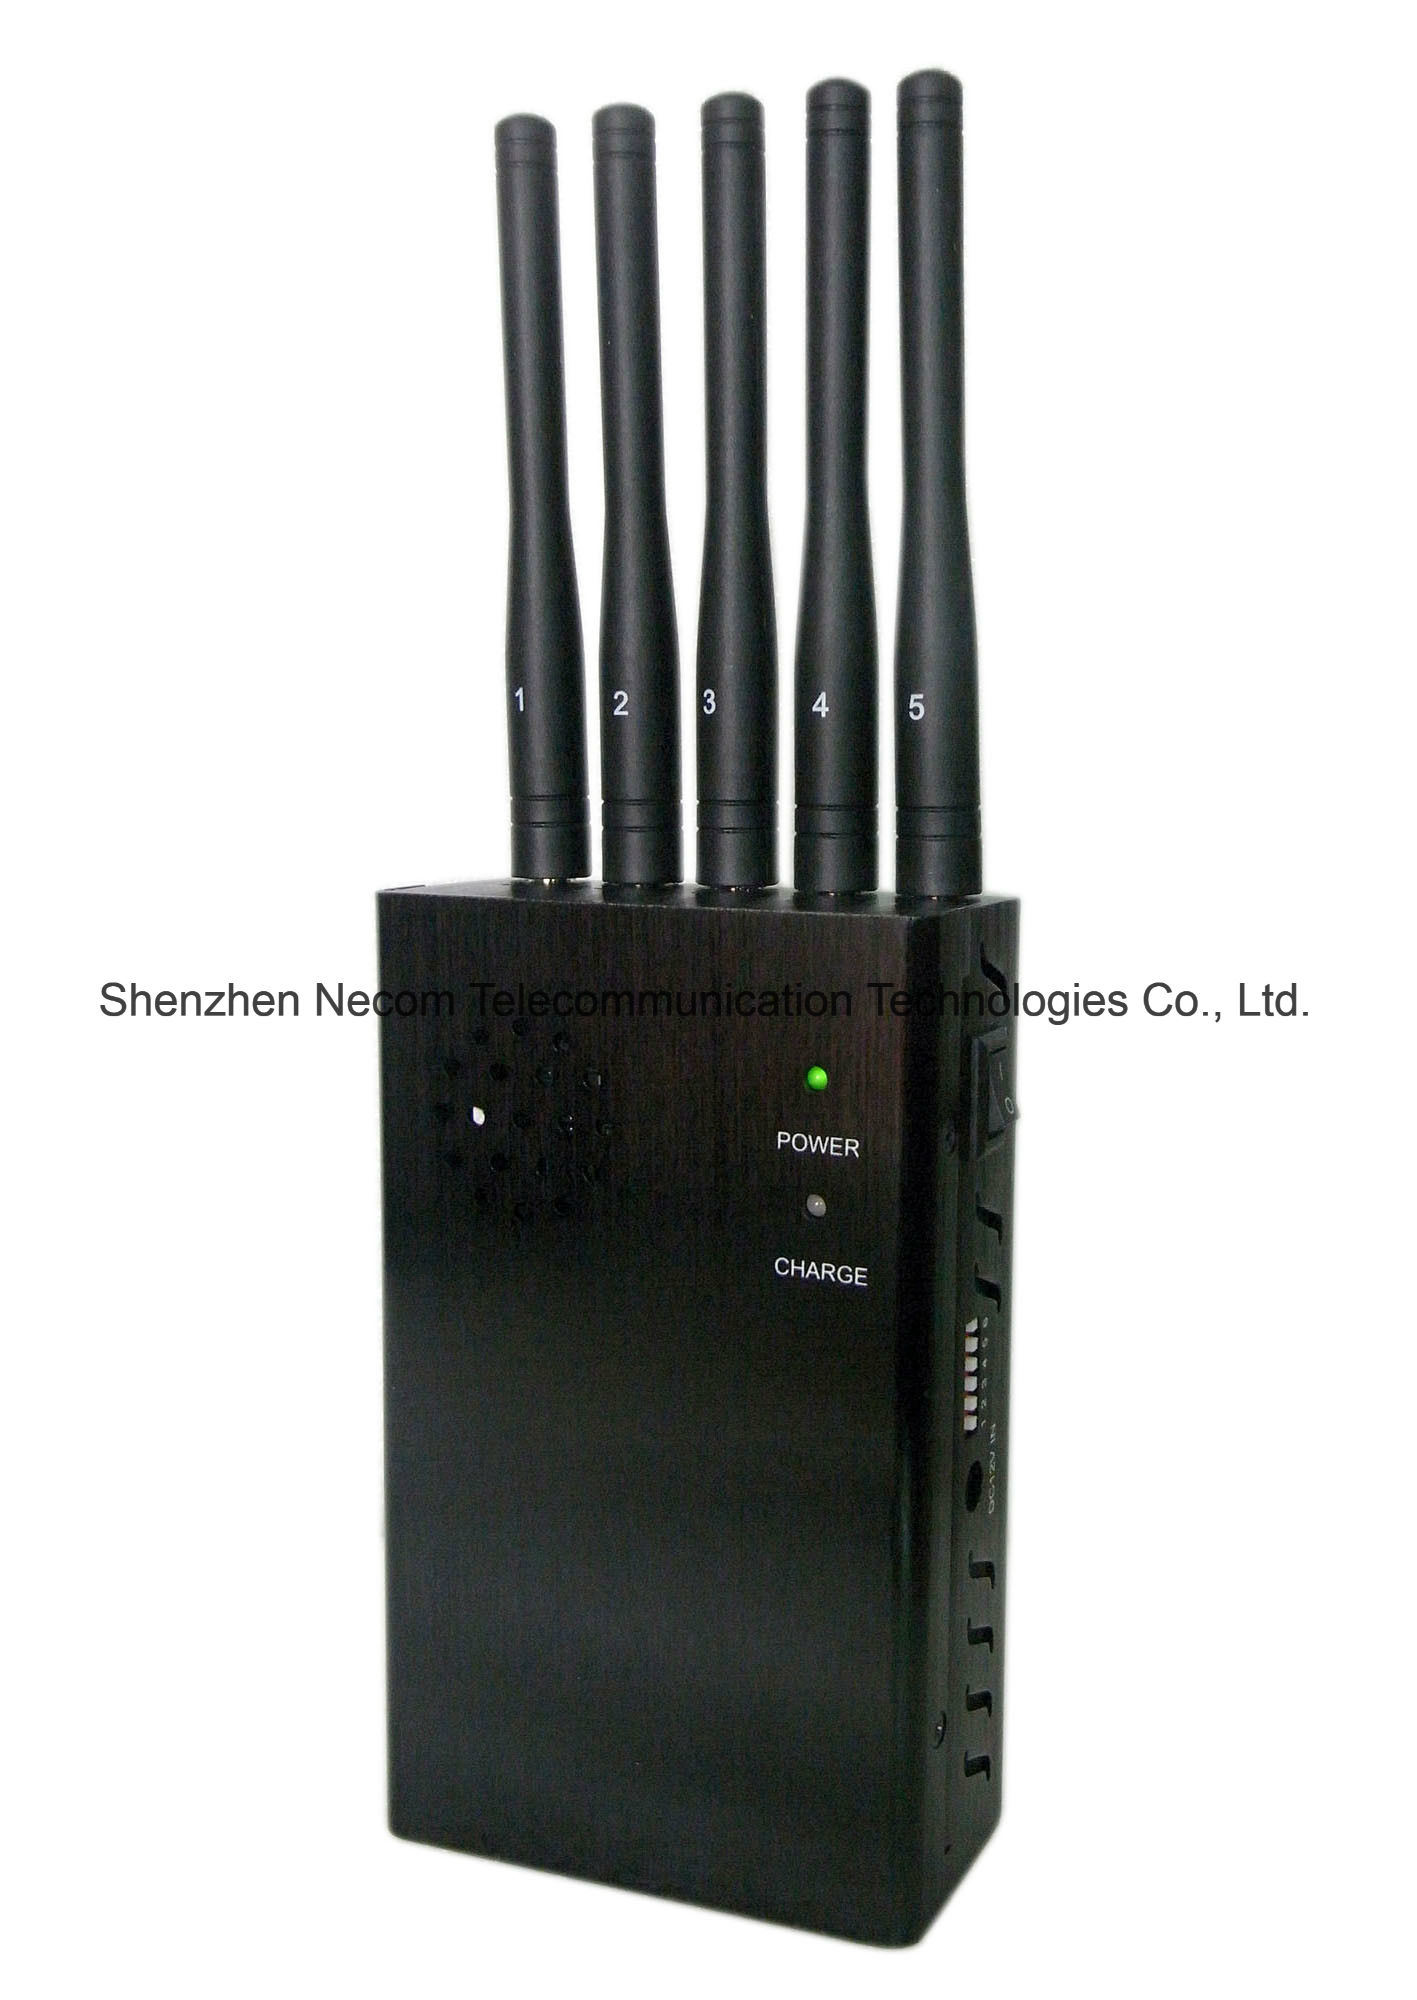 mobile network signal jammer - China 5 Antenna Big Portable Cell Jammer, Portable GPS Jammer, Portable WiFi Jammer, Jamming 2g+3G+4G+Gpsl1 - China 5 Band Signal Blockers, Five Antennas Jammers